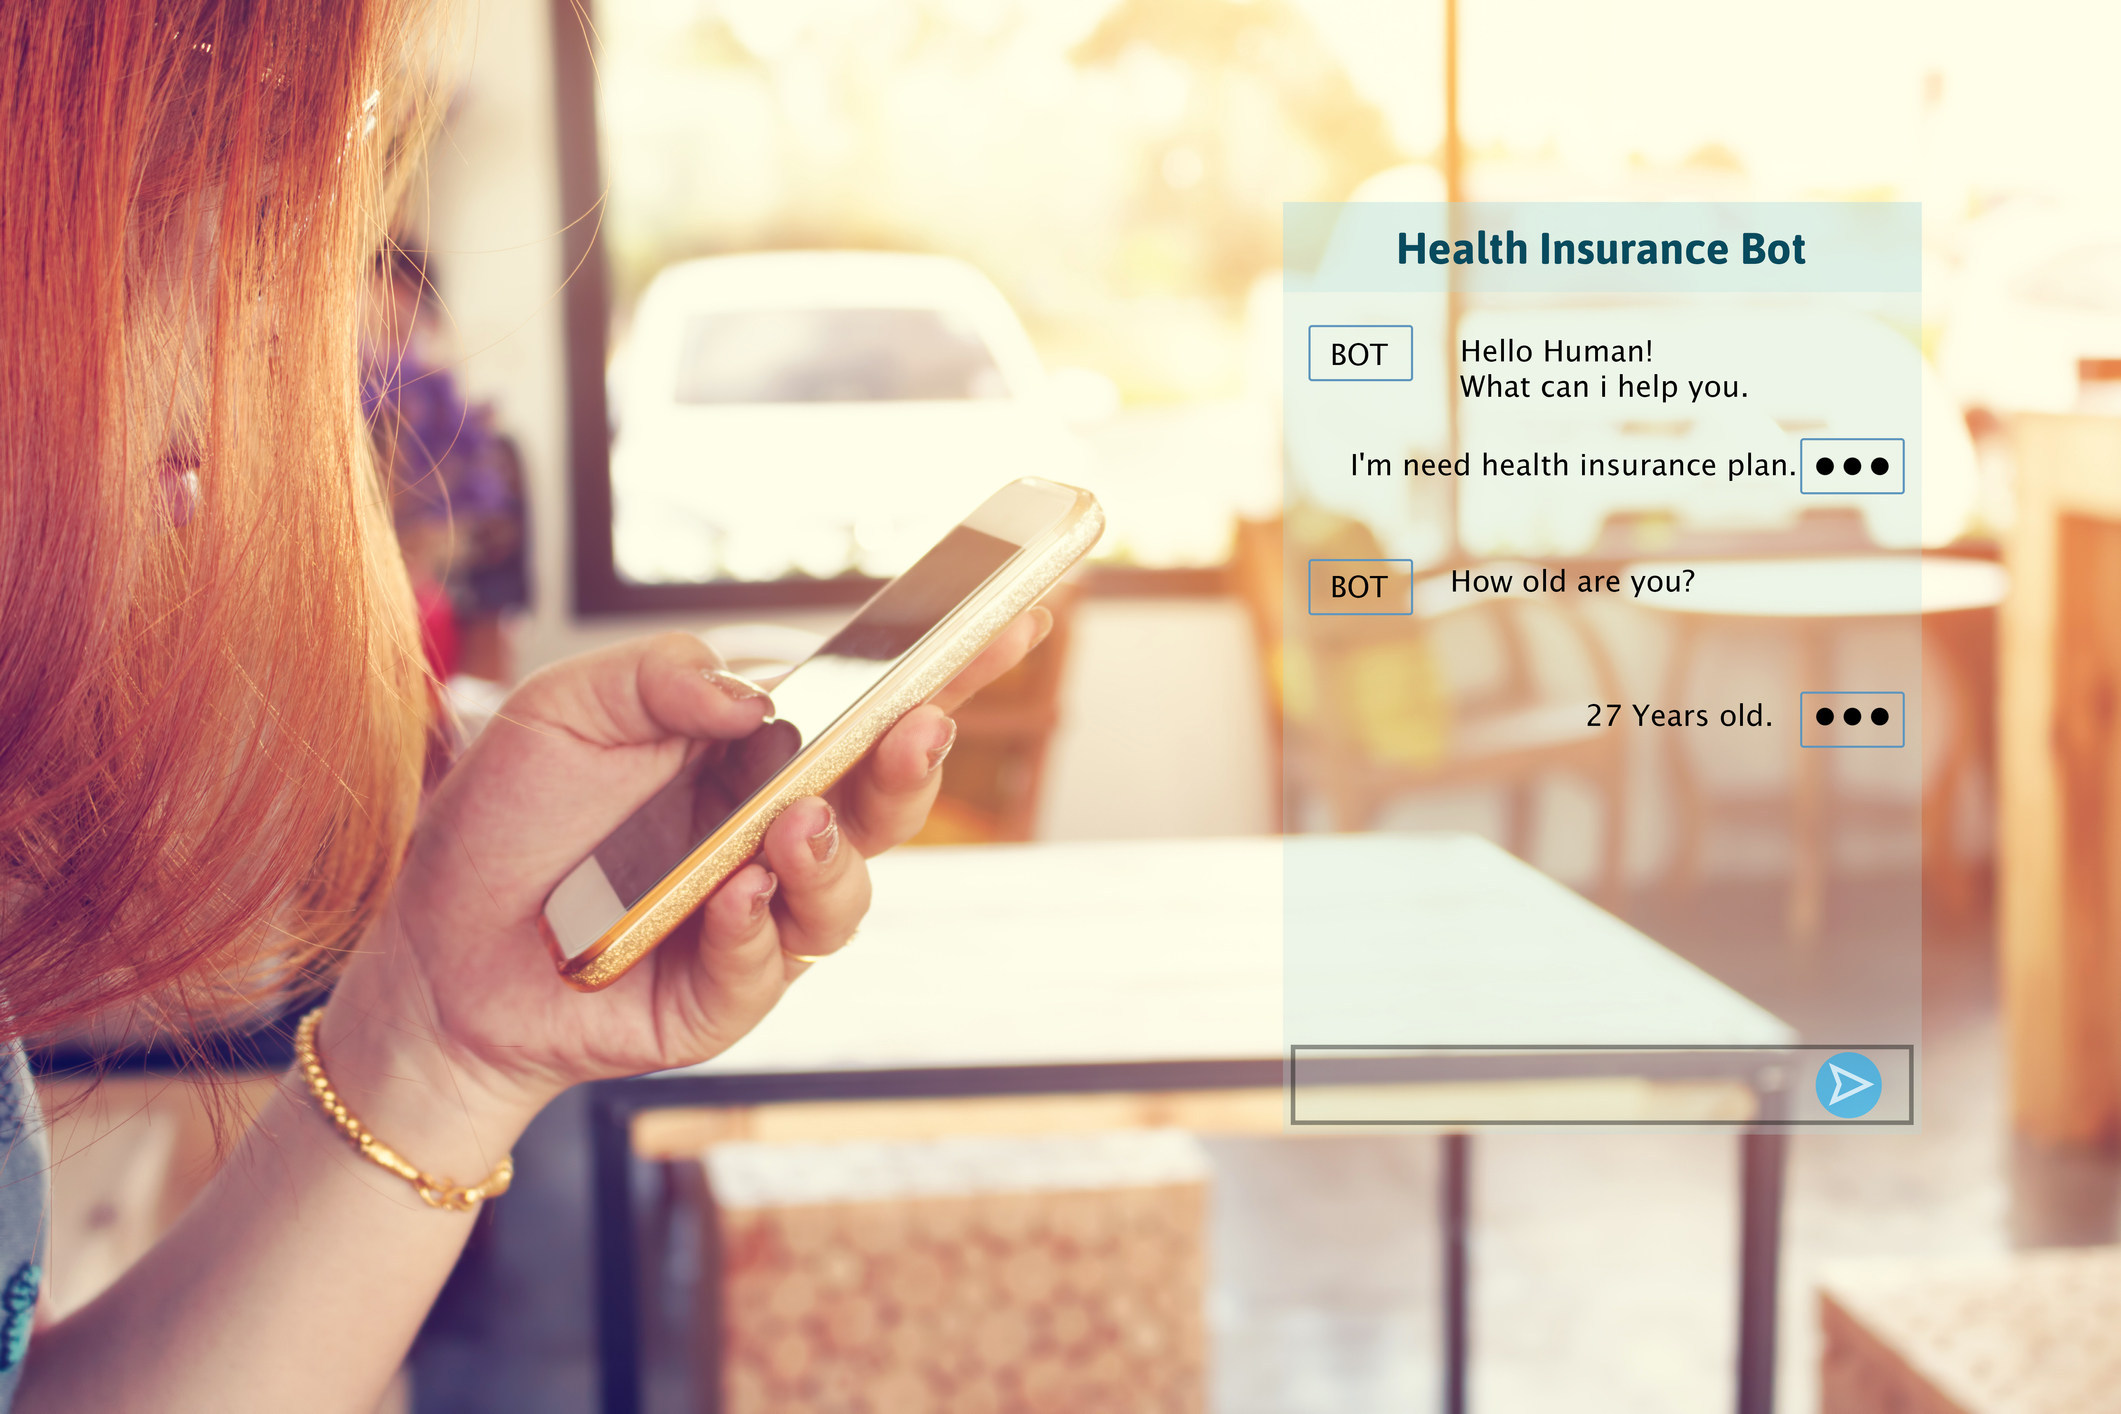 Insurance Companies Use Emerging Technologies and Business